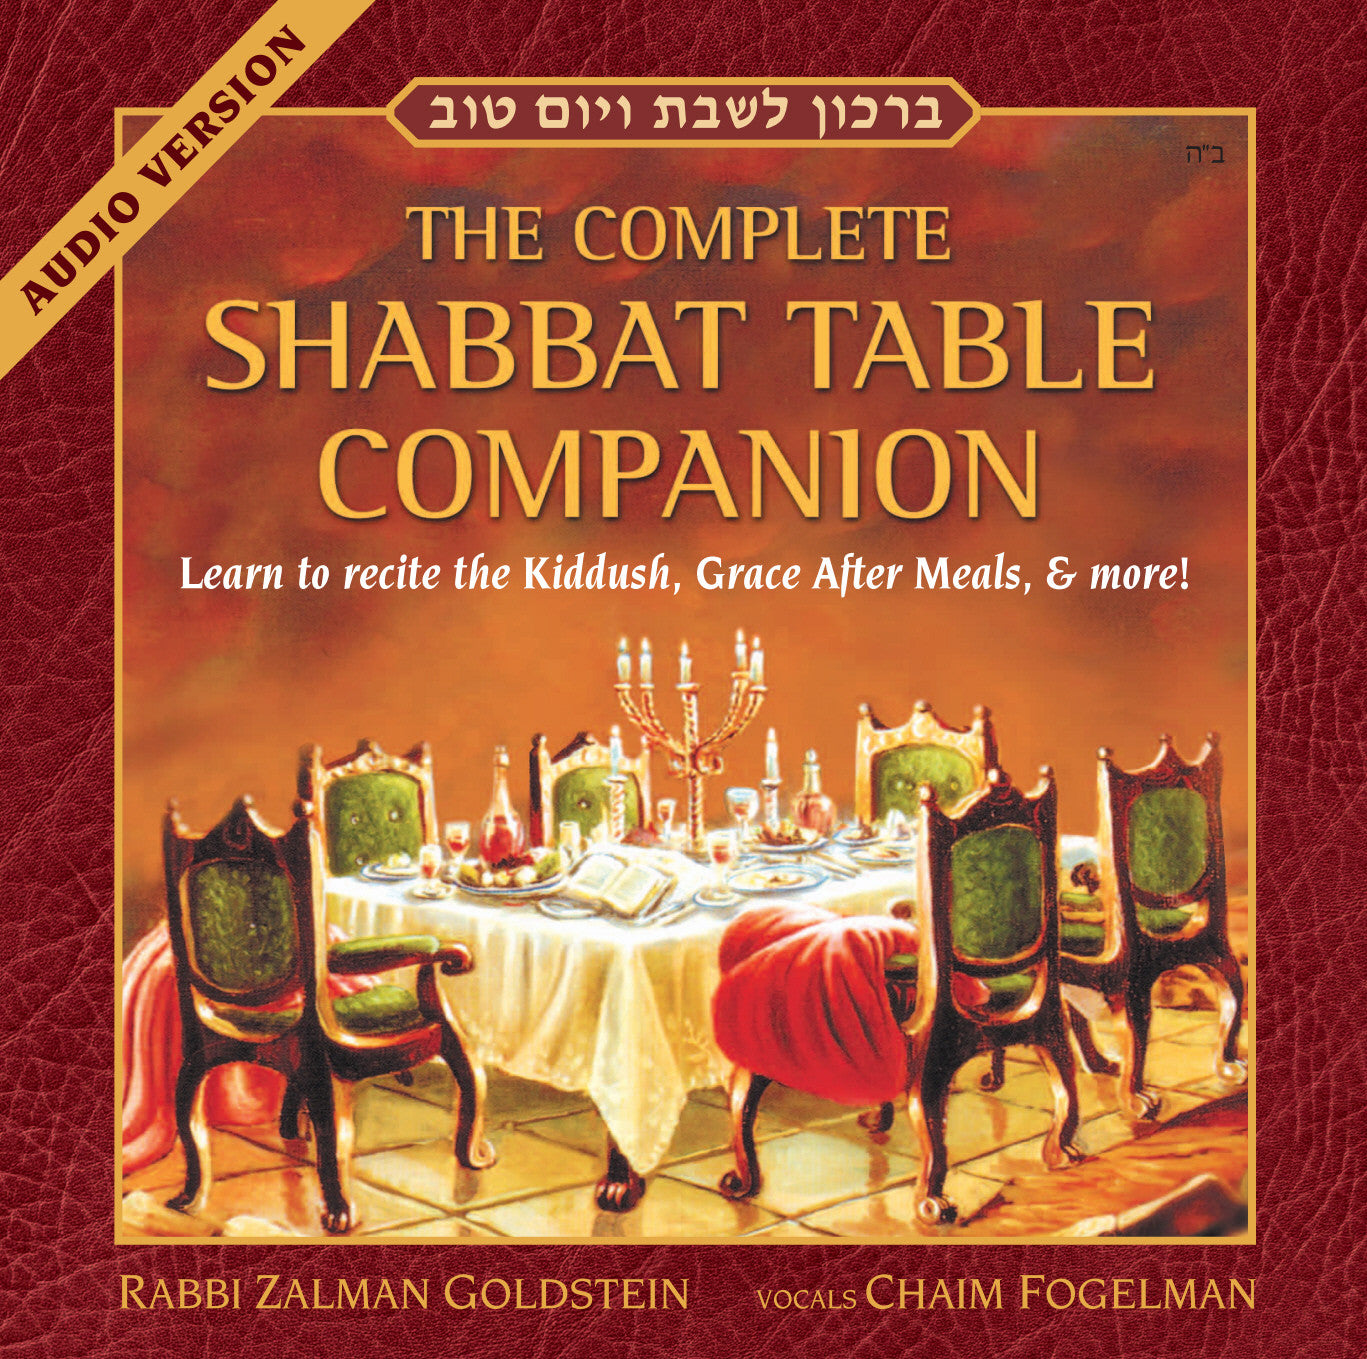 Chaim Fogelman - Shbbat Table Companion